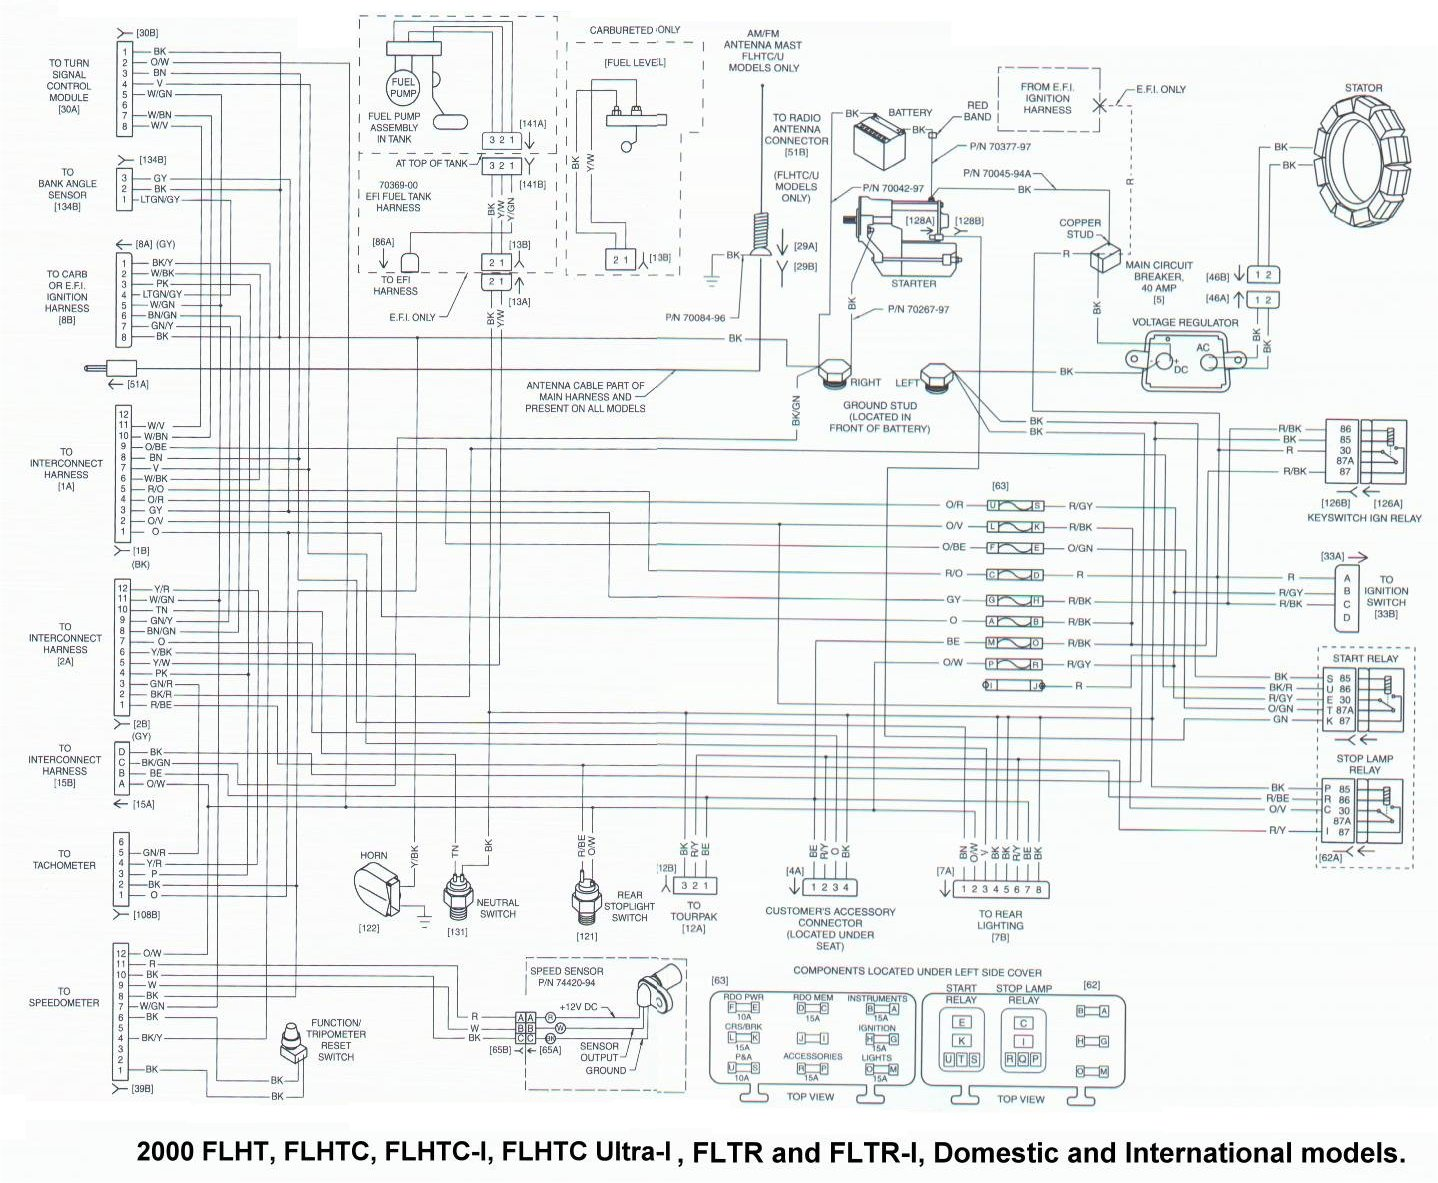 [VC_1959] 2000 Road King Wiring Diagram Schematic Wiring